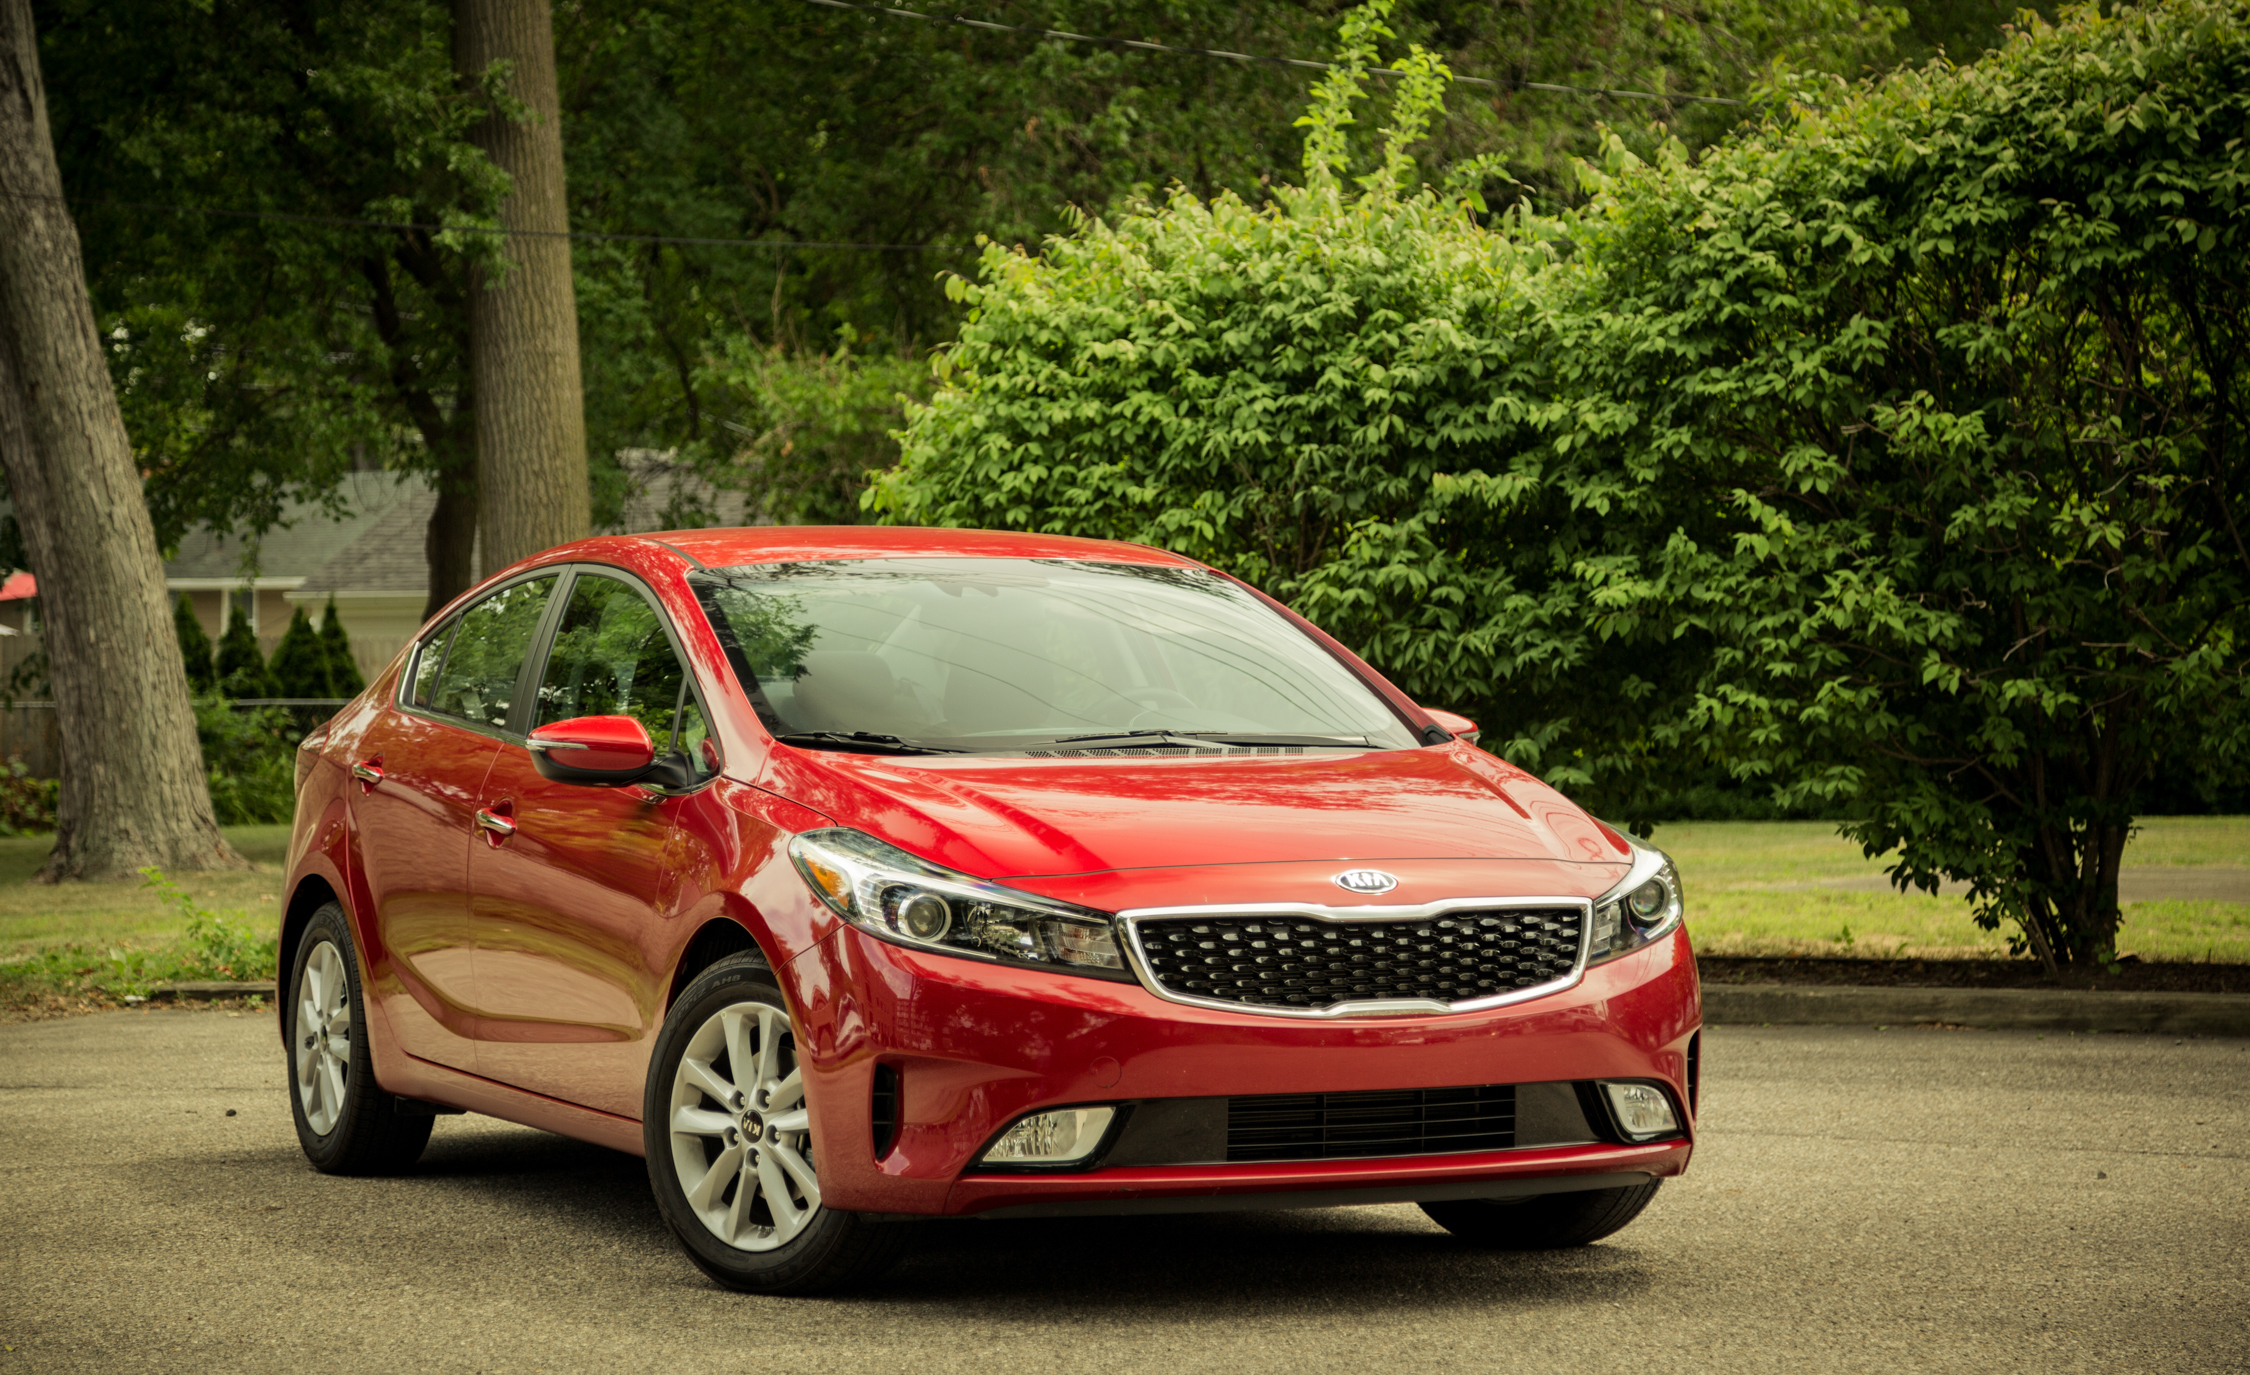 2017 Kia Forte Exterior Preview (Photo 4 of 13)